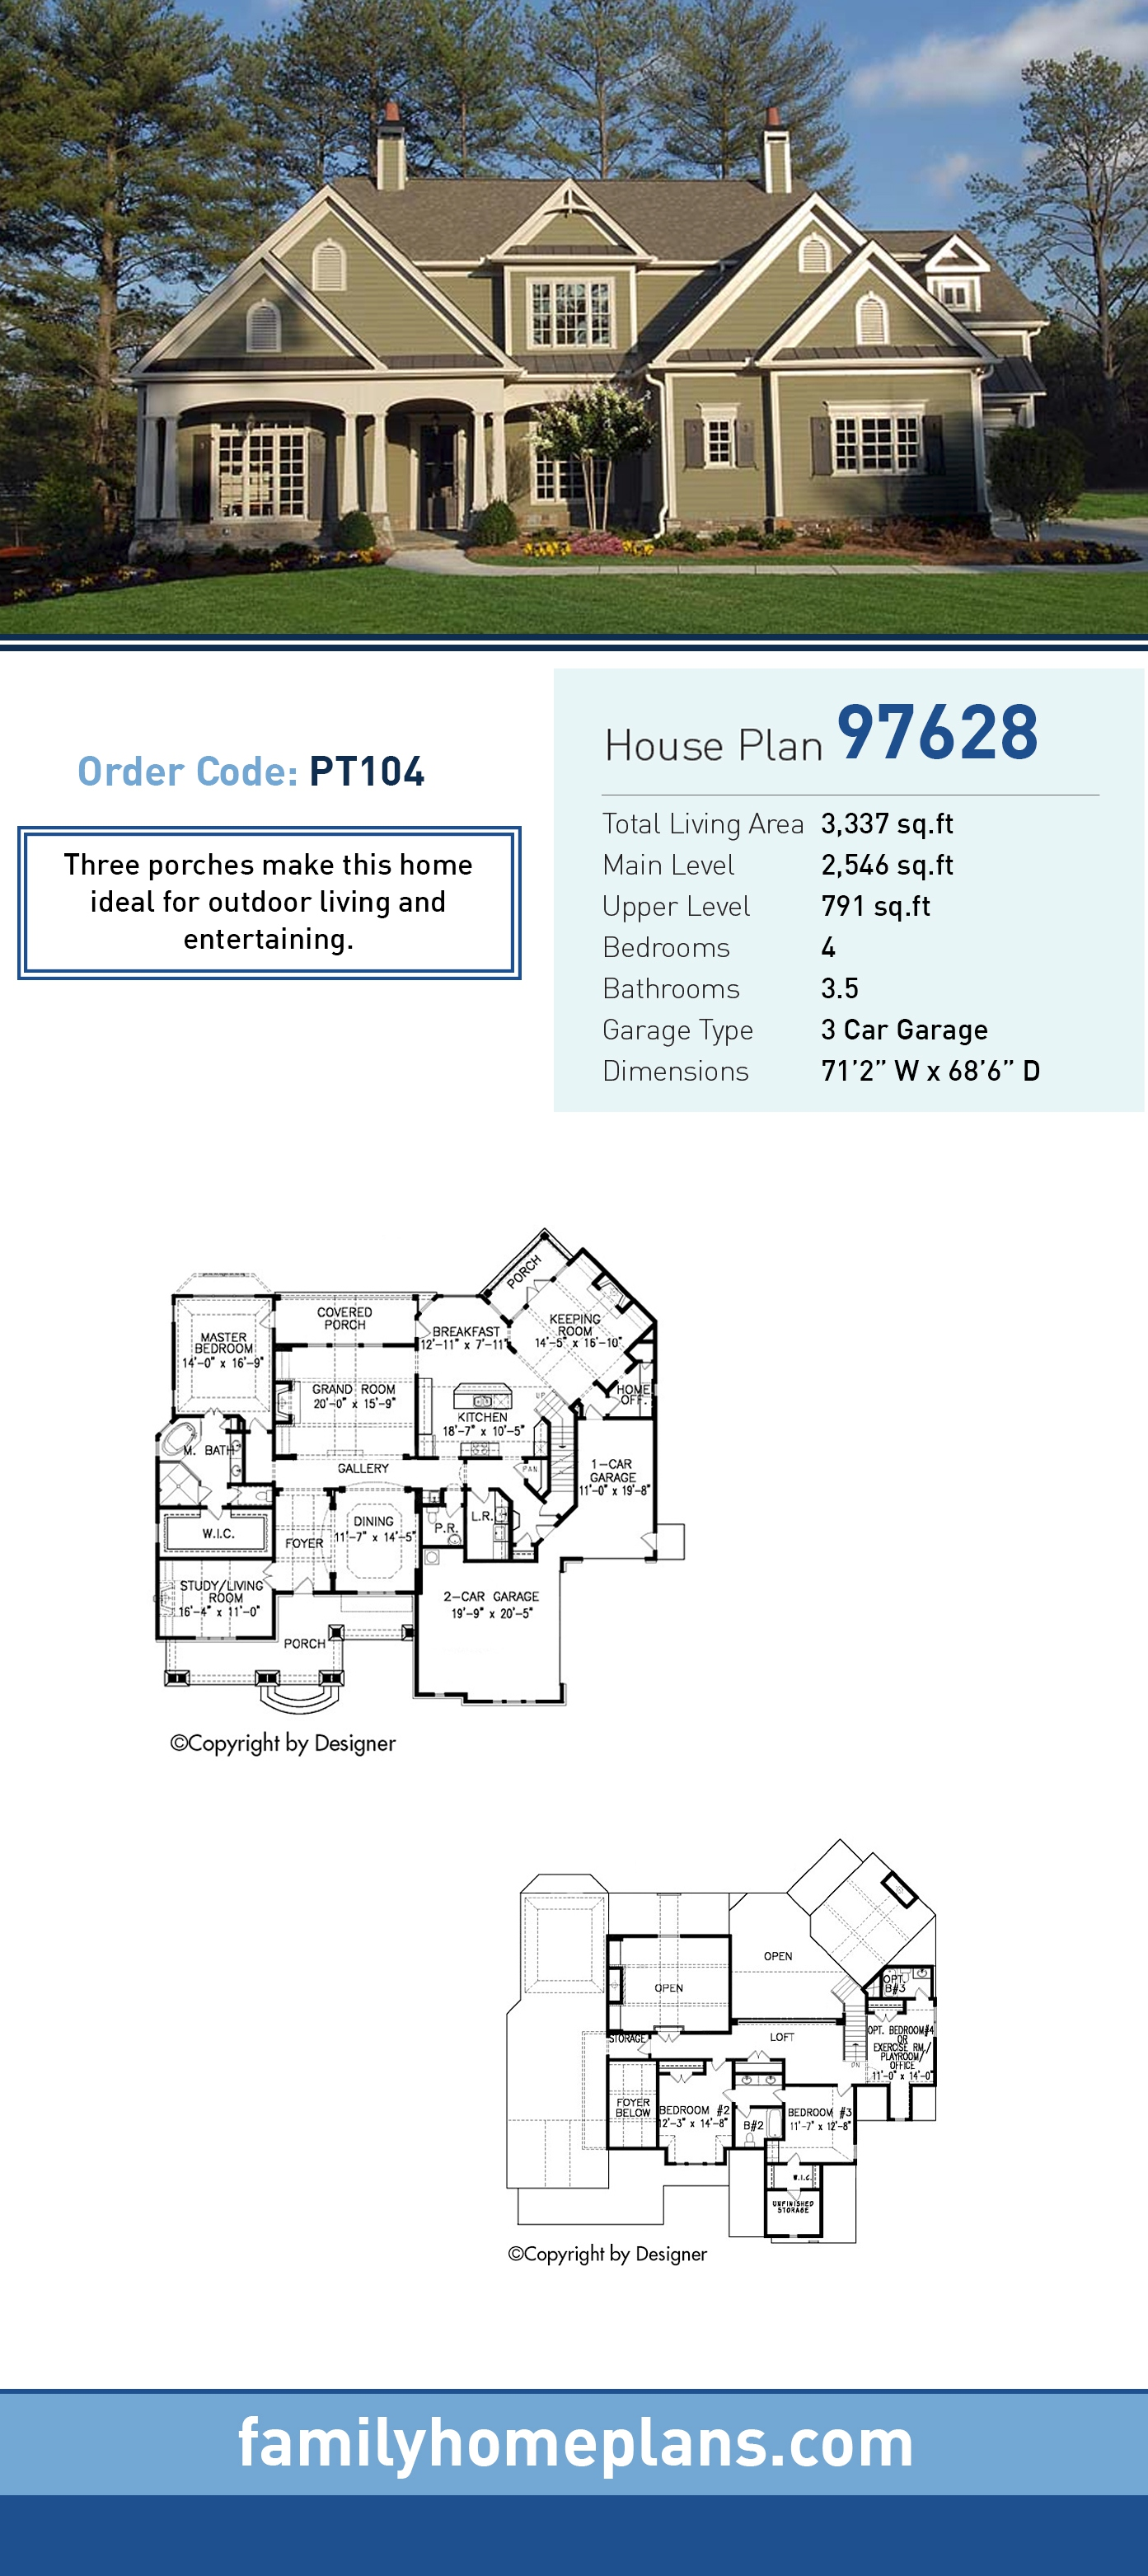 Cottage, Traditional House Plan 97628 with 4 Beds, 4 Baths, 3 Car Garage